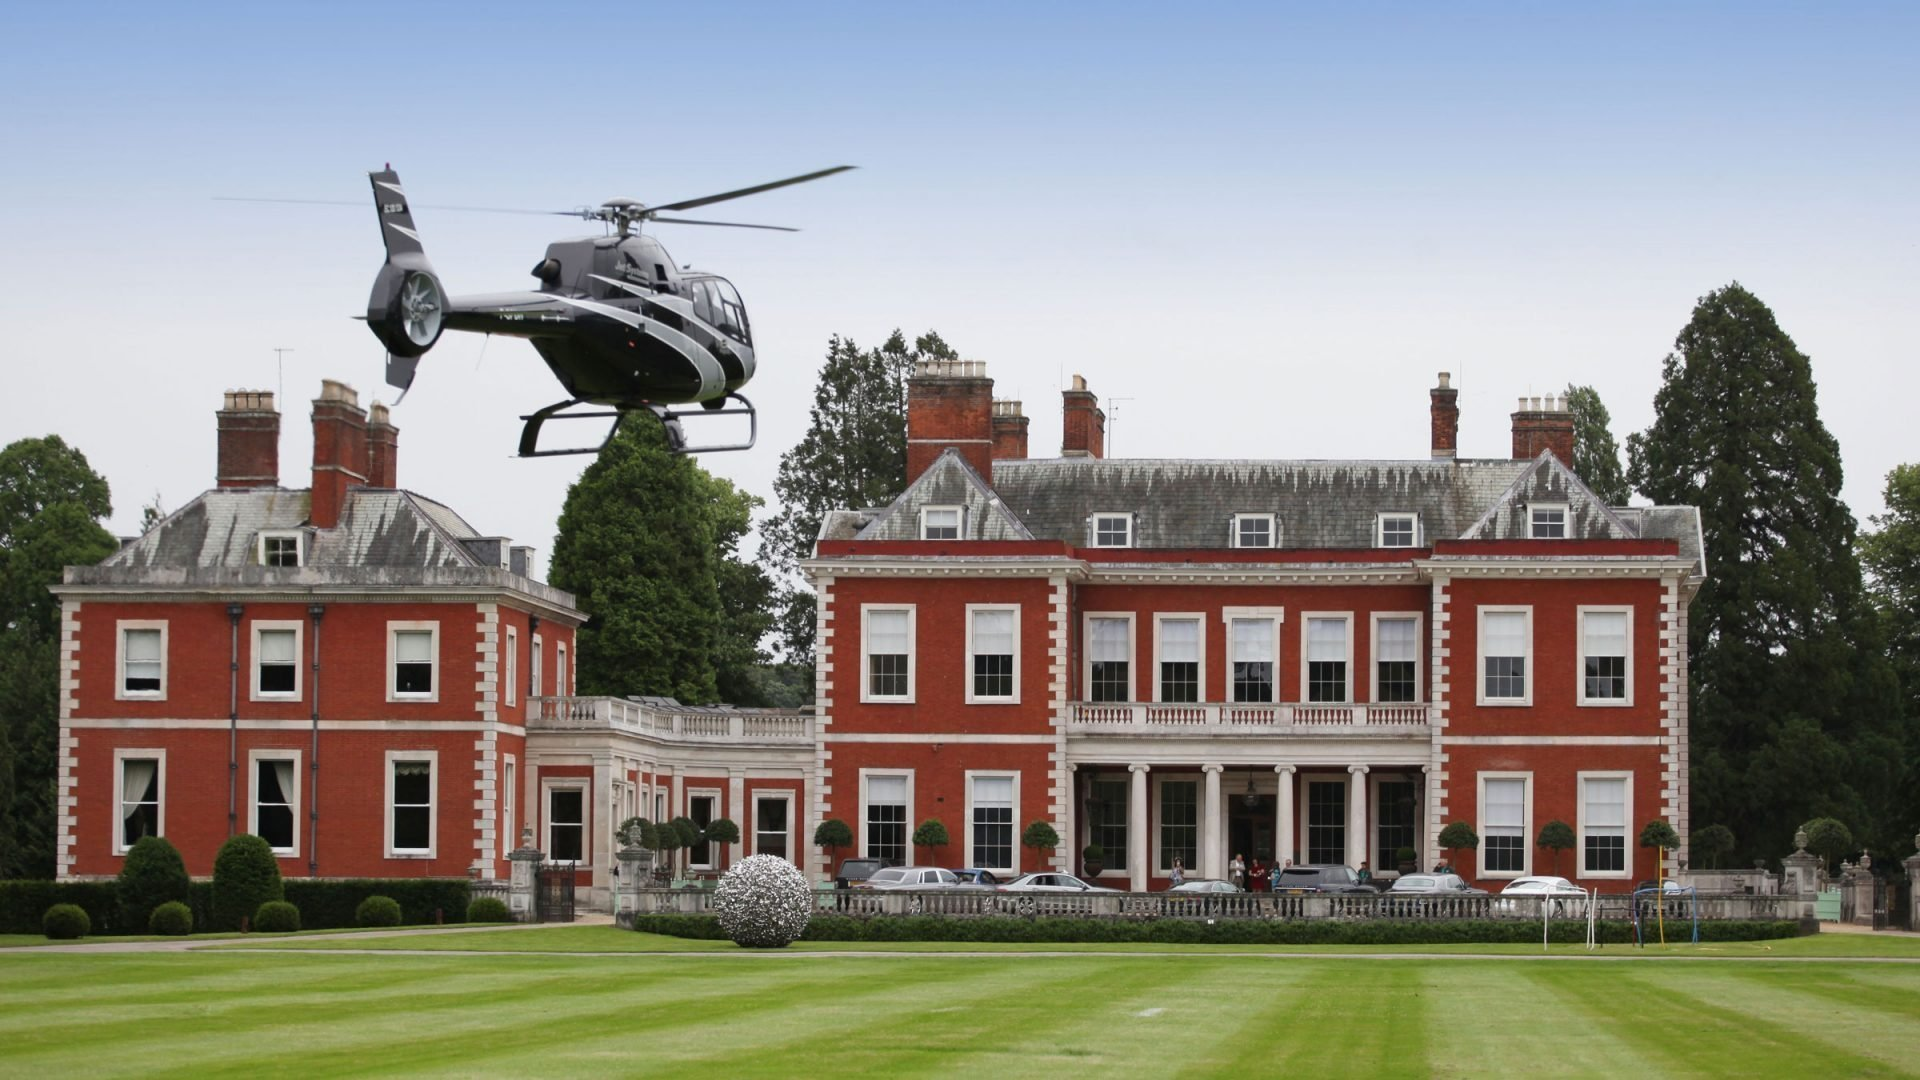 The Dorchester - Henley Royal Regatta Fawley Court Helicopter Landing